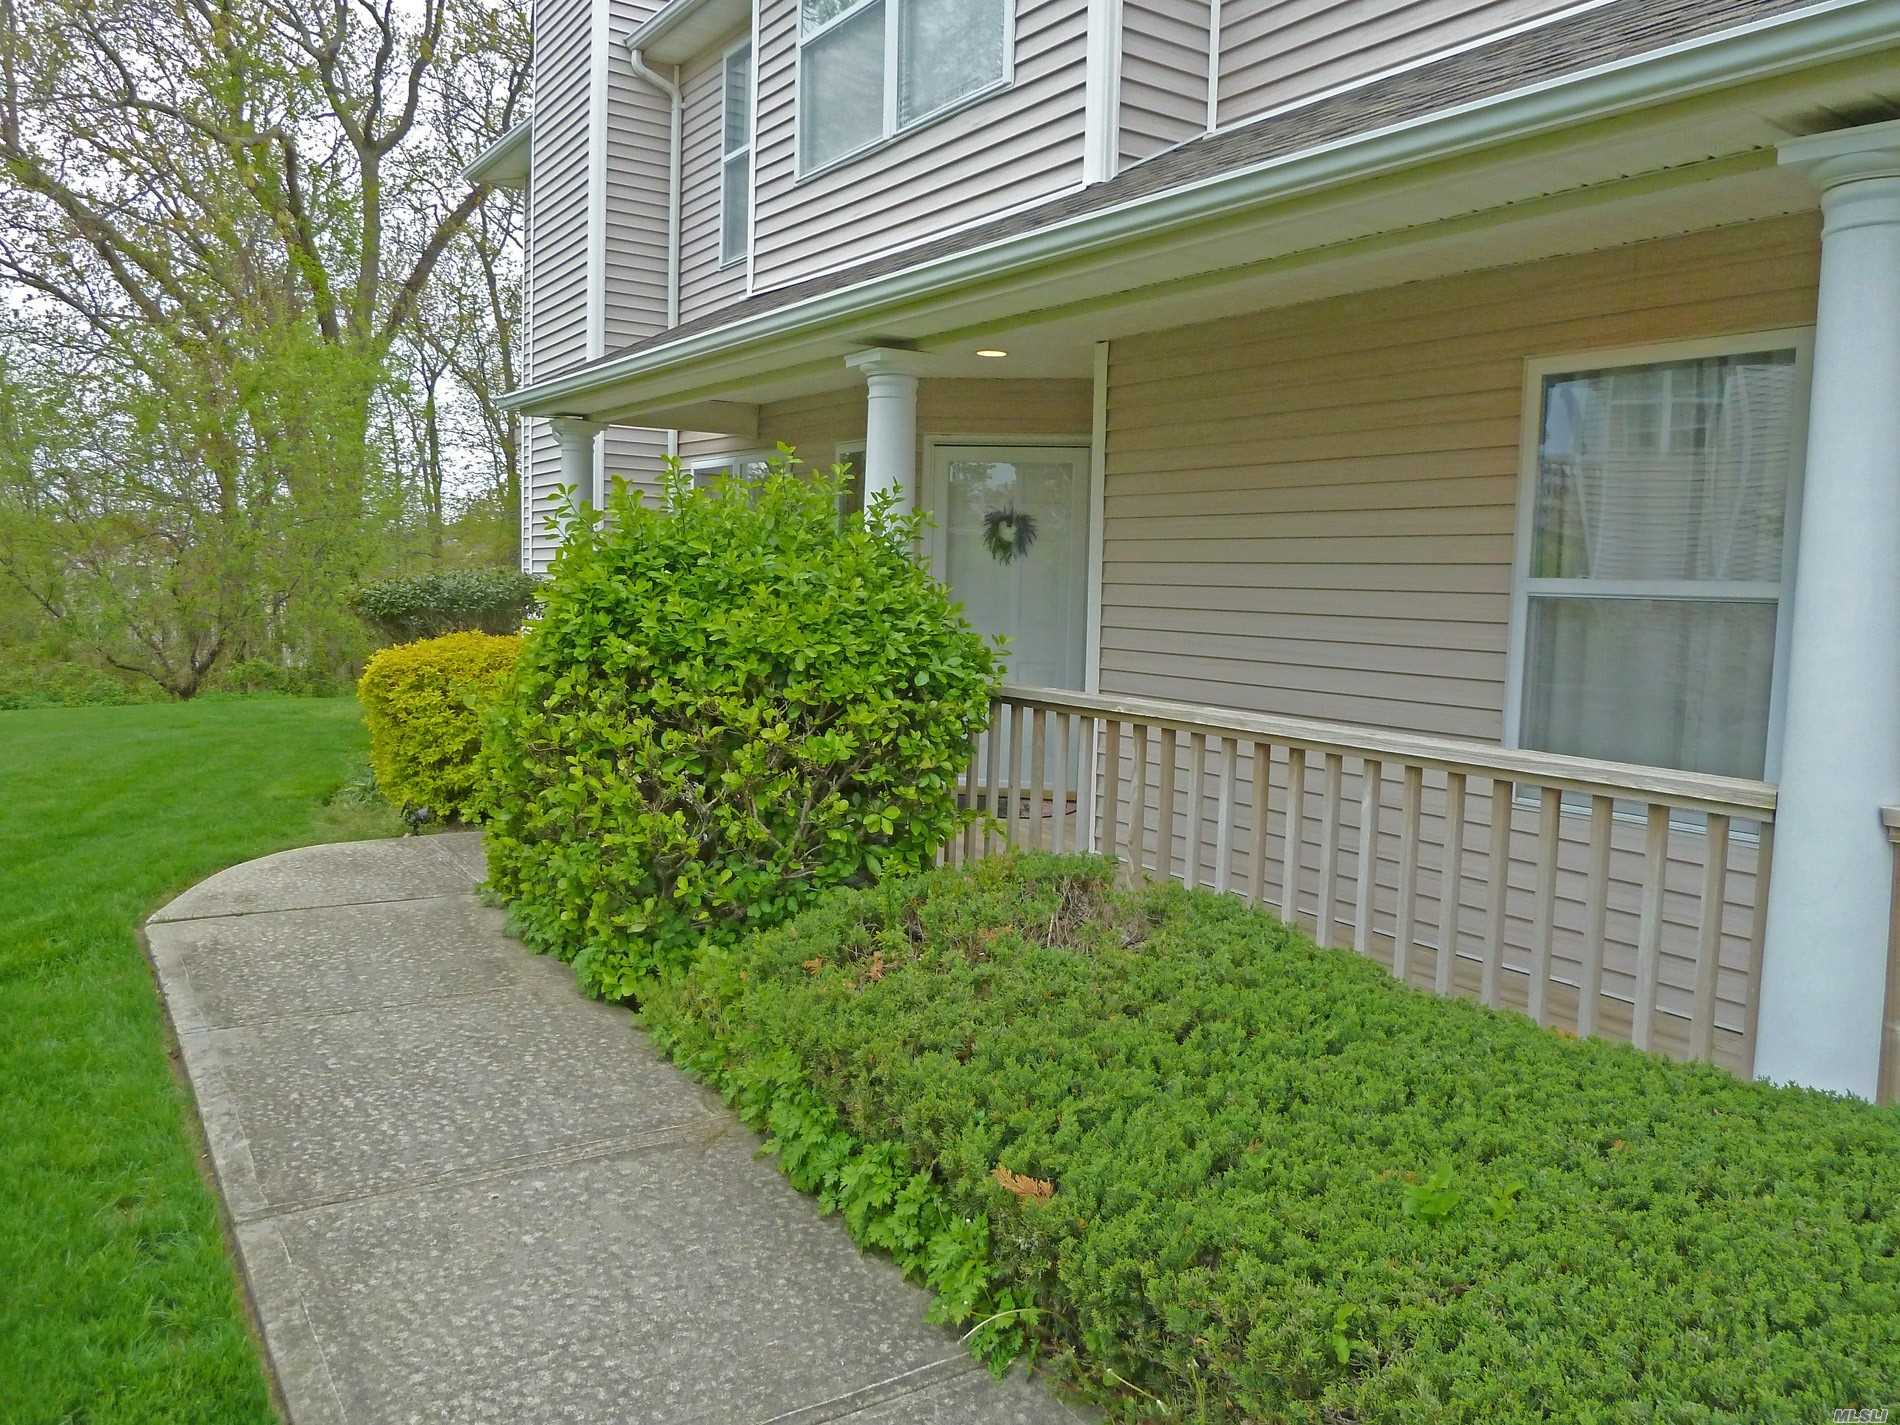 Lovely Ground Floor One Bedroom Corner Unit In The Gated Willow Ponds Community. Private Side Entrance With Porch. Bright Home With An Open Floorplan. Heated With Natural Gas. It Has Central Air, A Warm Fireplace, Tiled Baths And Generous Recessed Ceiling Lighting Throughout. The Floors Are An Oak Style Laminate And Out Back You'll Find A Private Deck Overlooking Lawn And Woods. Willow Ponds Has It's Own Long Island Sound Beach Access, Tennis, A Clubhouse And An Inground Pool. Come See It Soon!